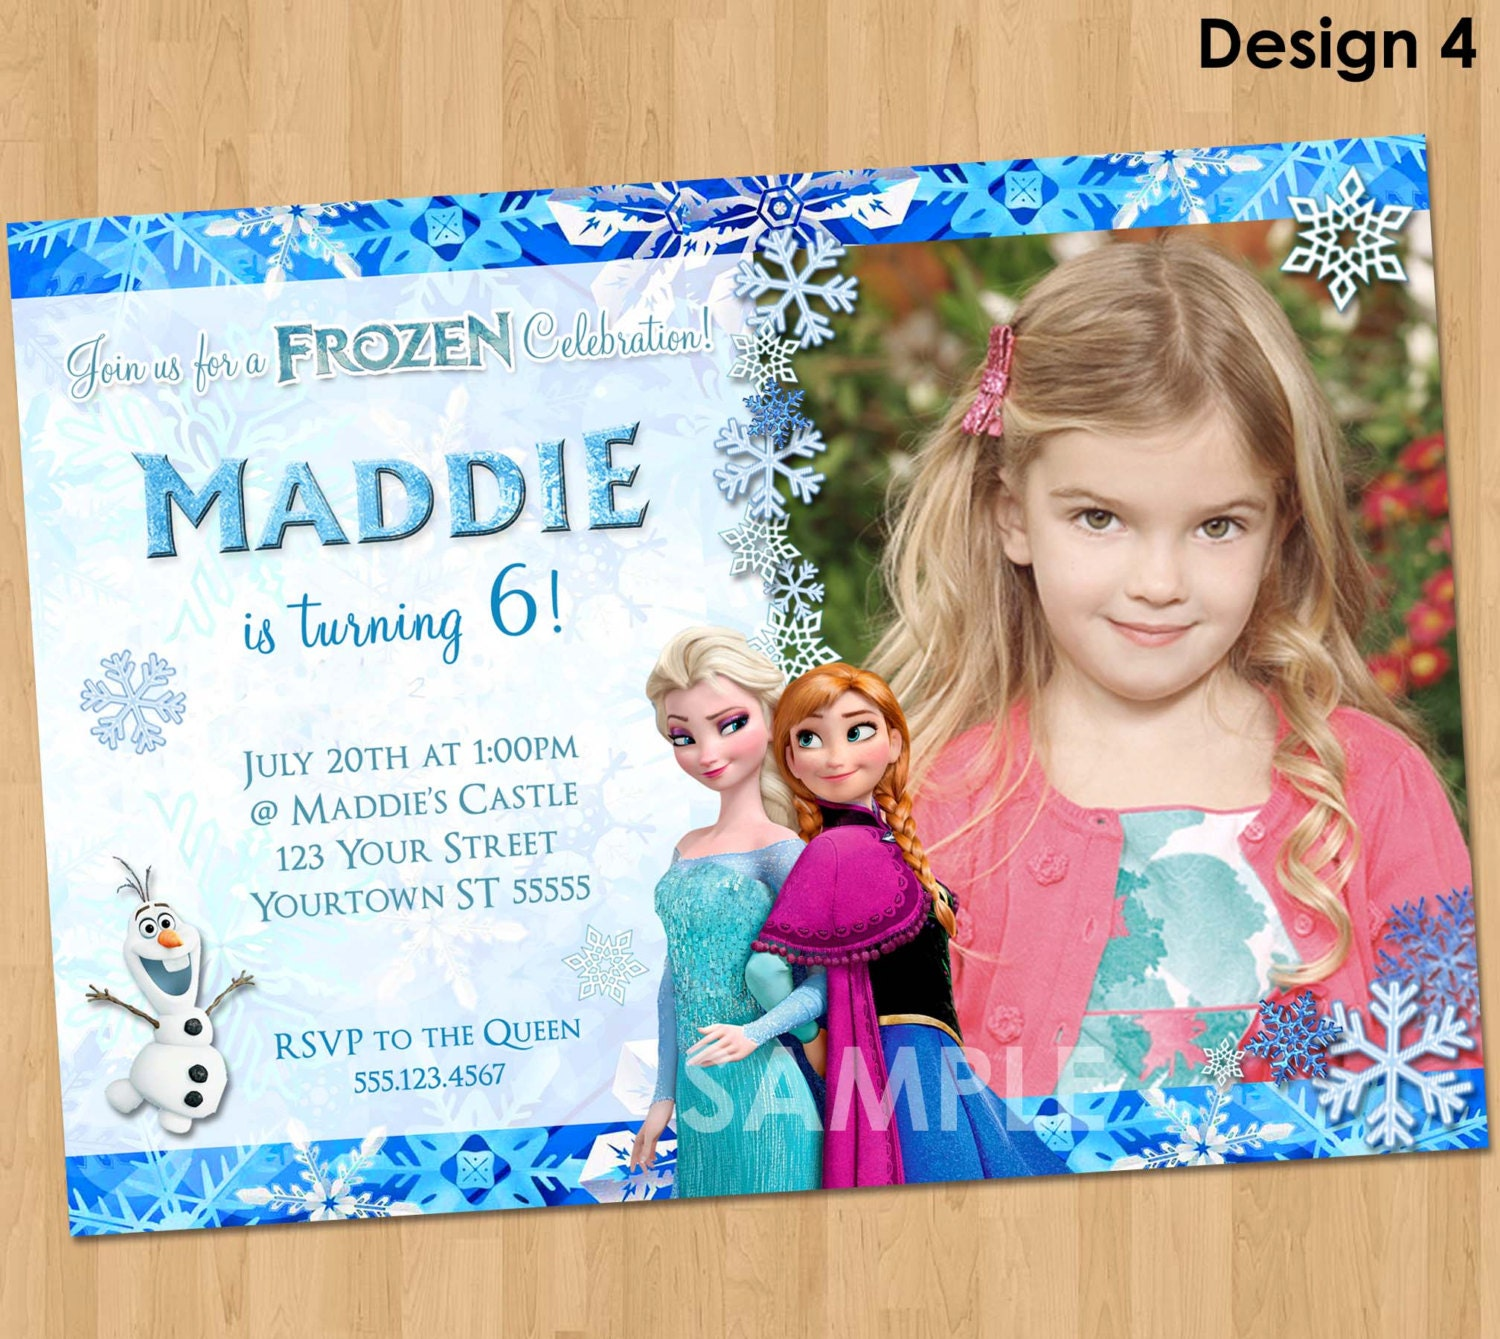 Printable Frozen Invitation Frozen Birthday Invitation With - Birthday invitation frozen theme